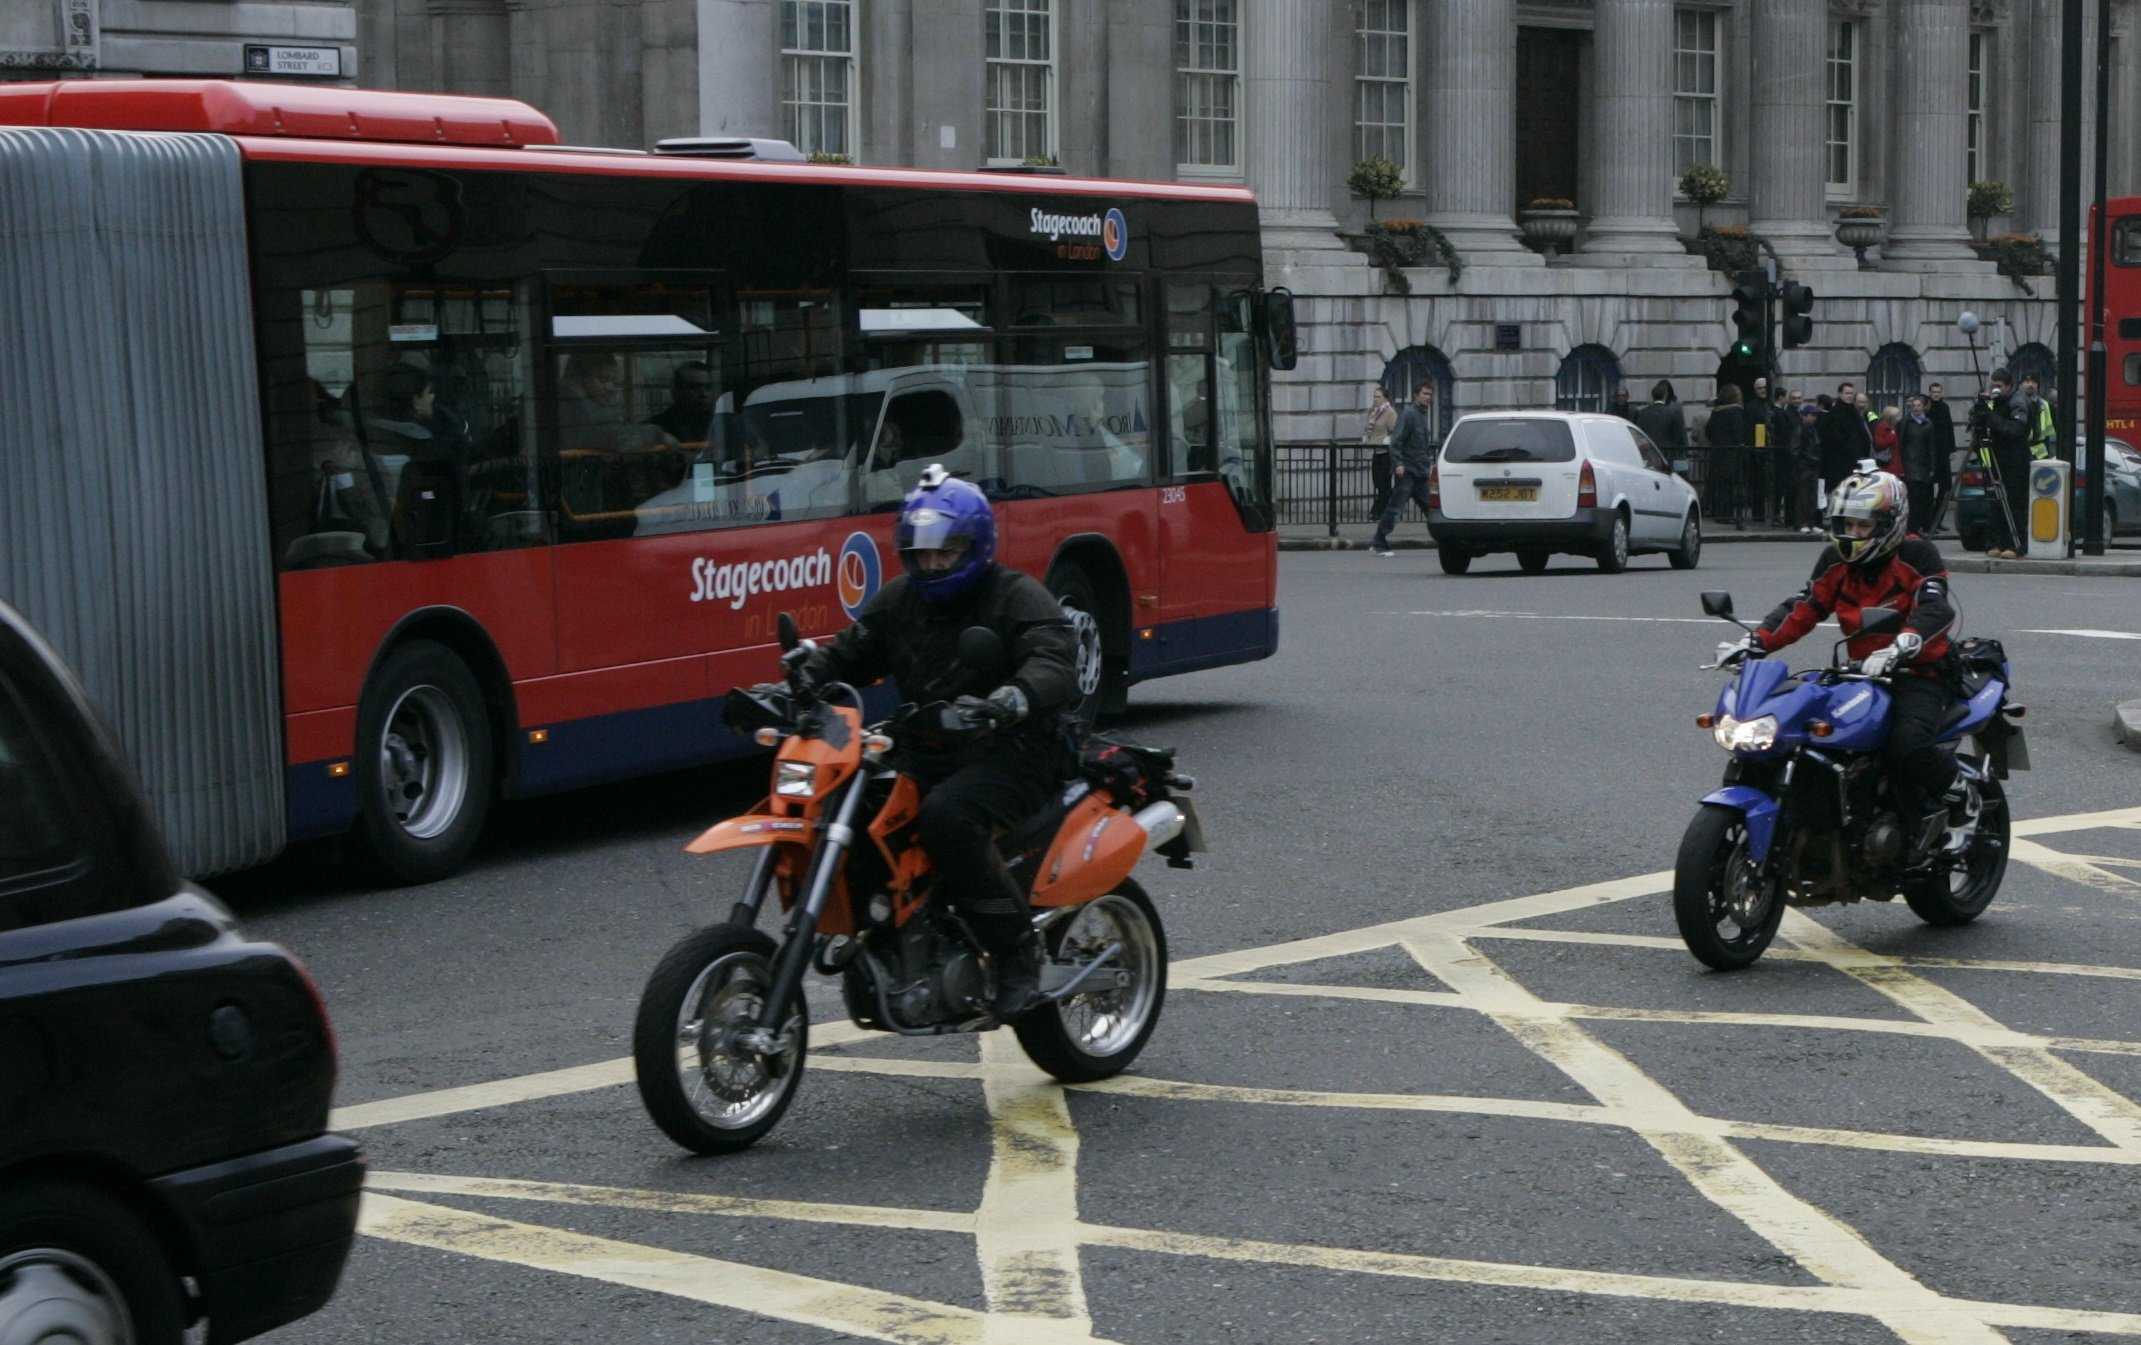 people who ride a motorcycle or scooter have better road skills which help them drive better too